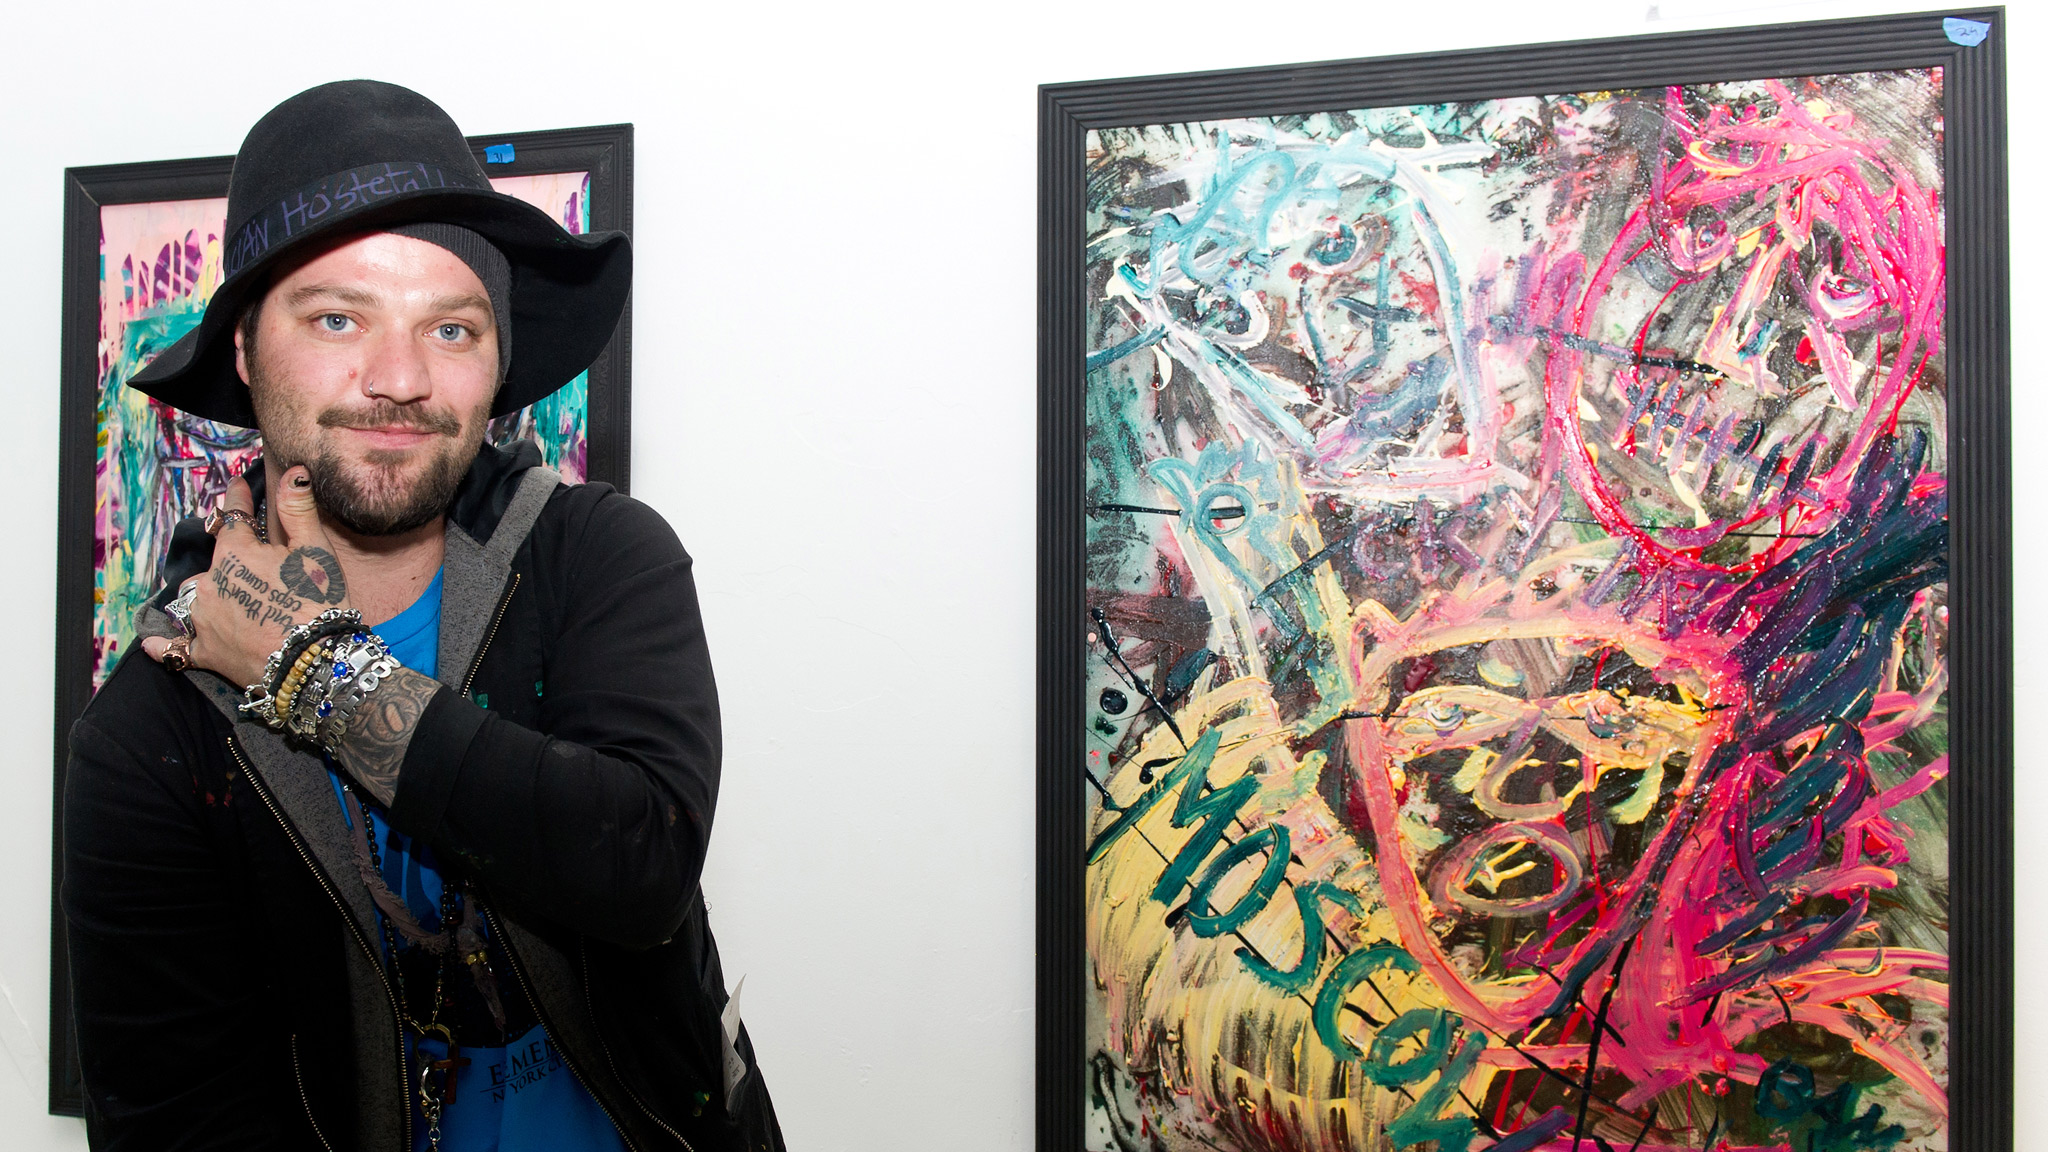 Man of many hats: Bam at the Bam Margera & Friends art-exhibit opening at The James Oliver Gallery last April in Philly. He's just been greenlighted to film a new reality-style TV game show for 2014.